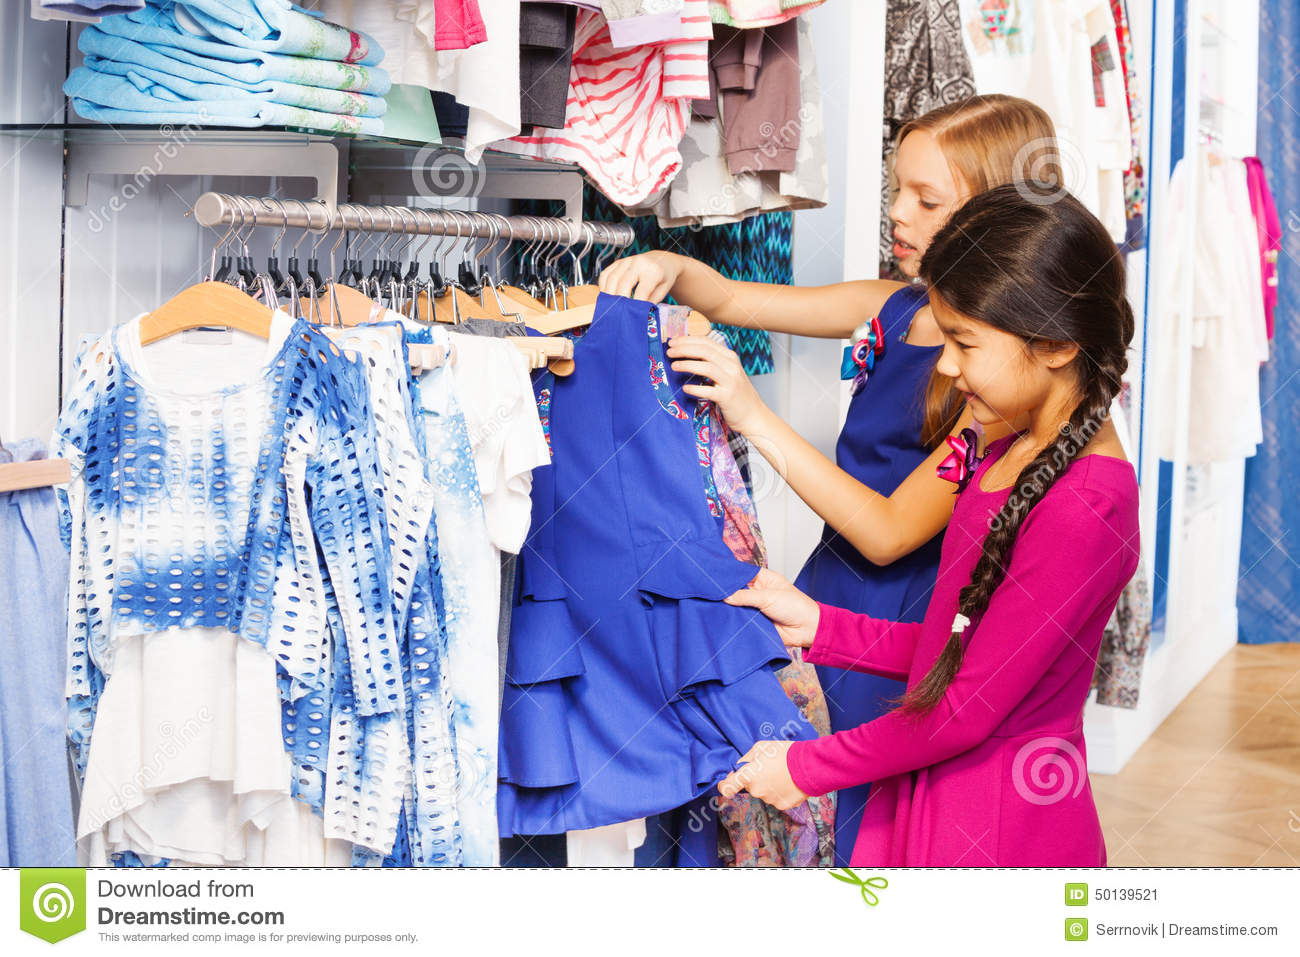 afb03badf1 Two Small Girls Shop Together In The Clothes Store Stock Image ...